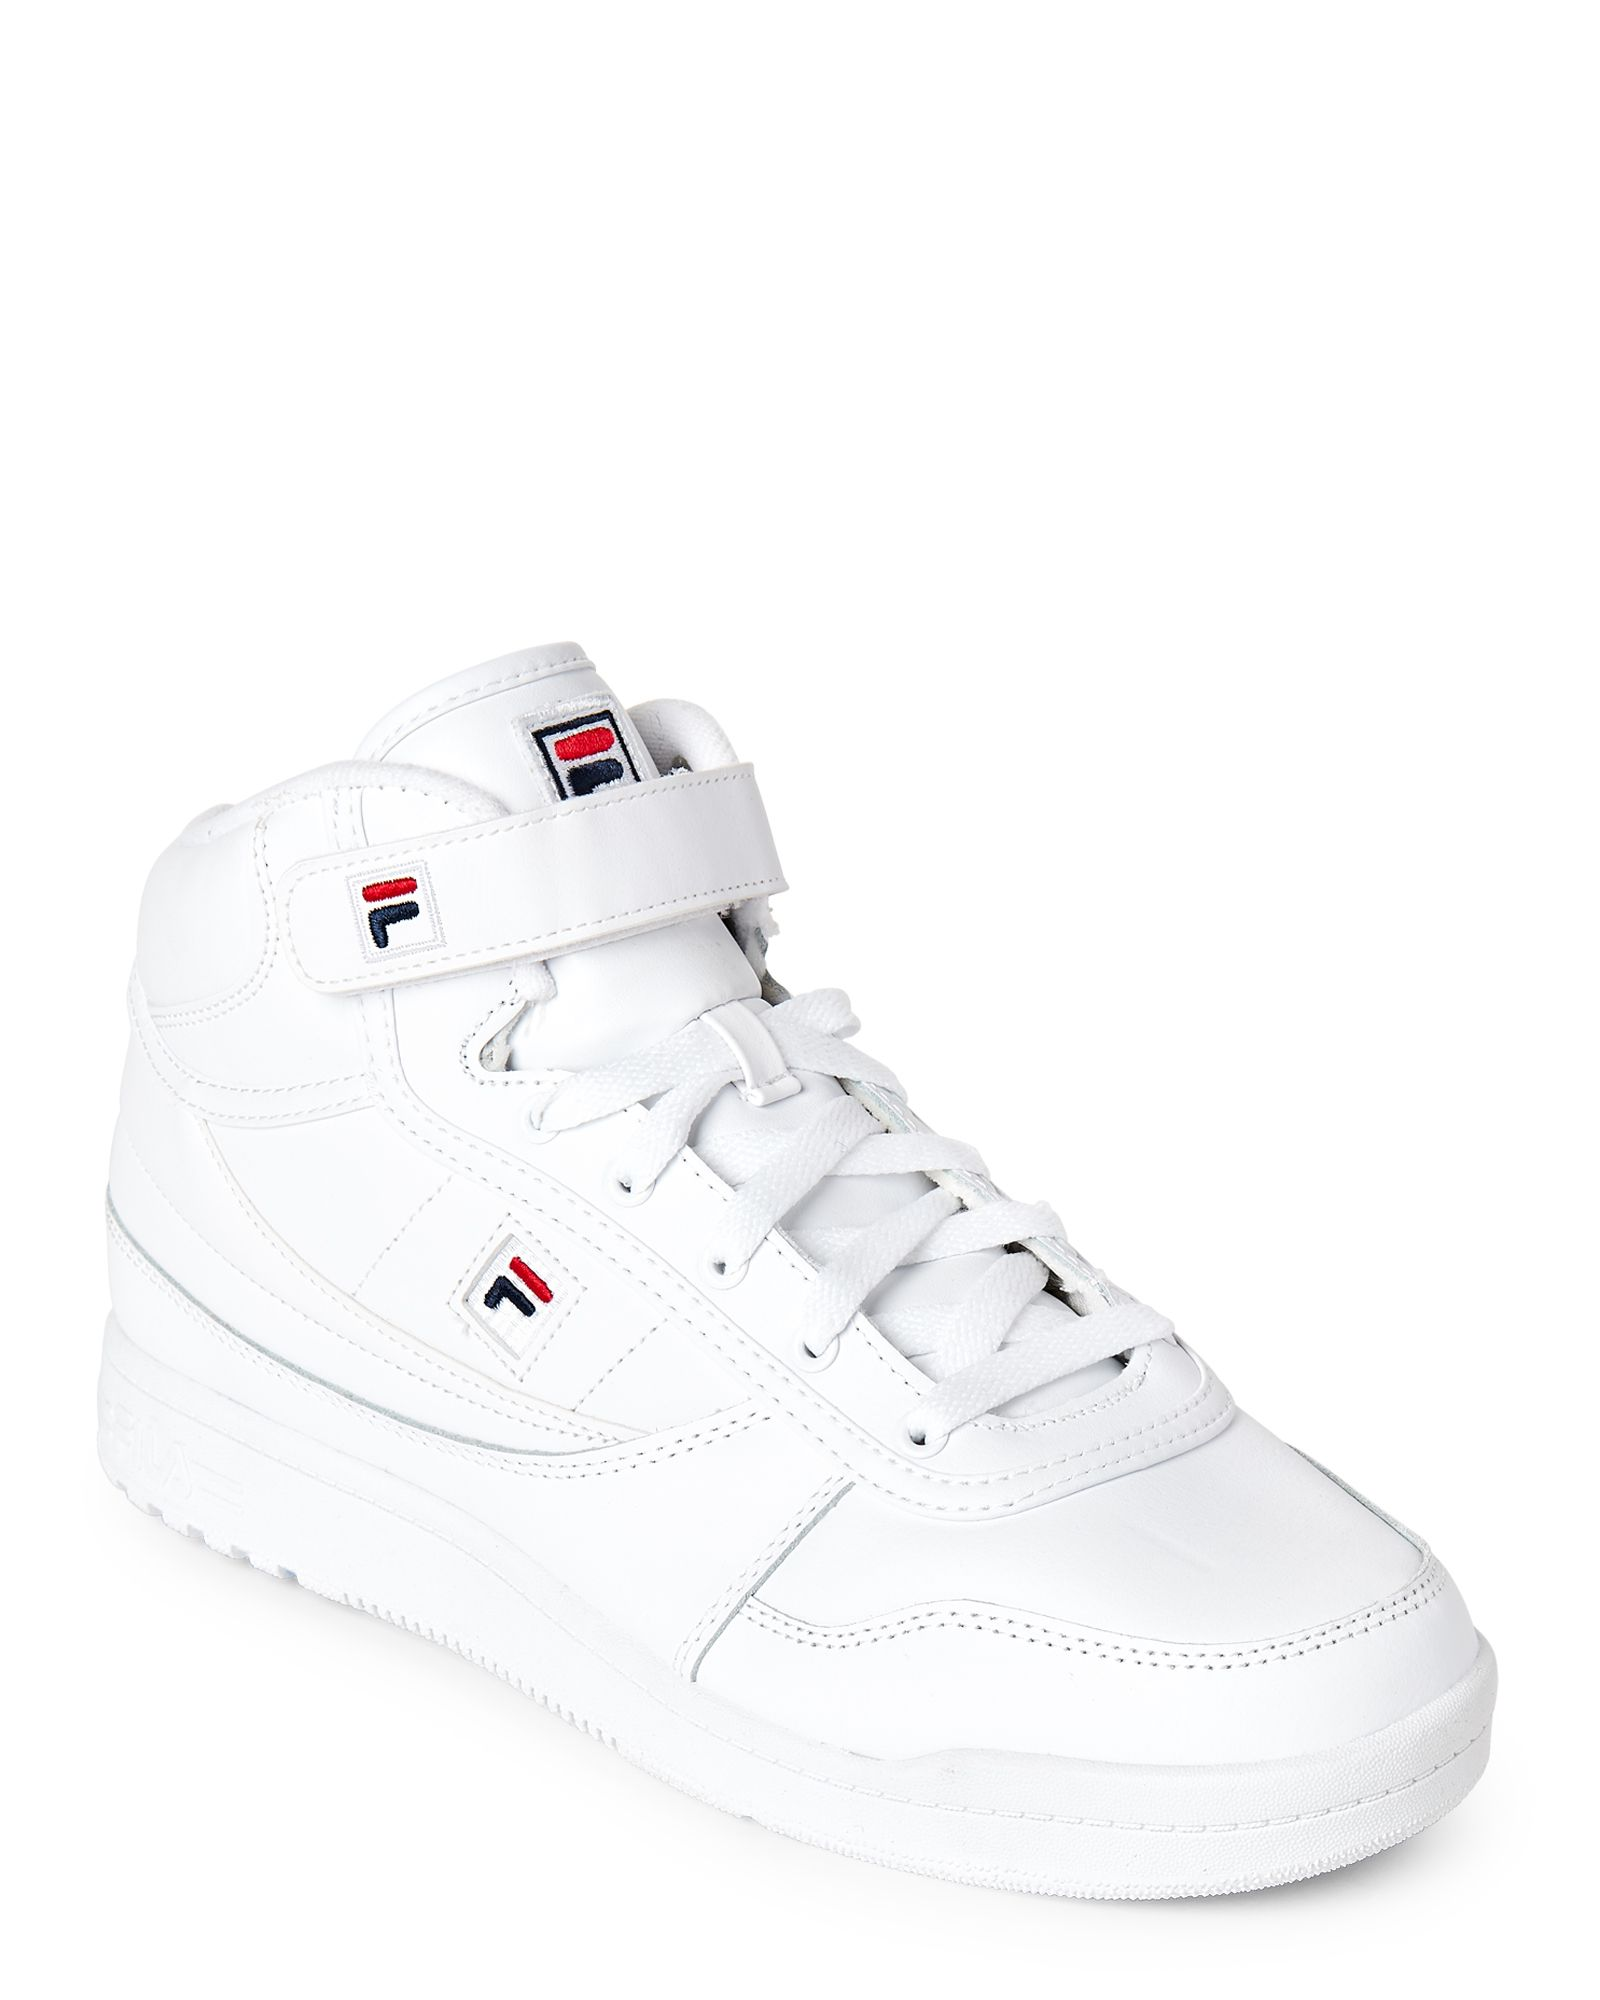 Fila White BBN 86 High Top Sneakers | *Apparel & Accessories